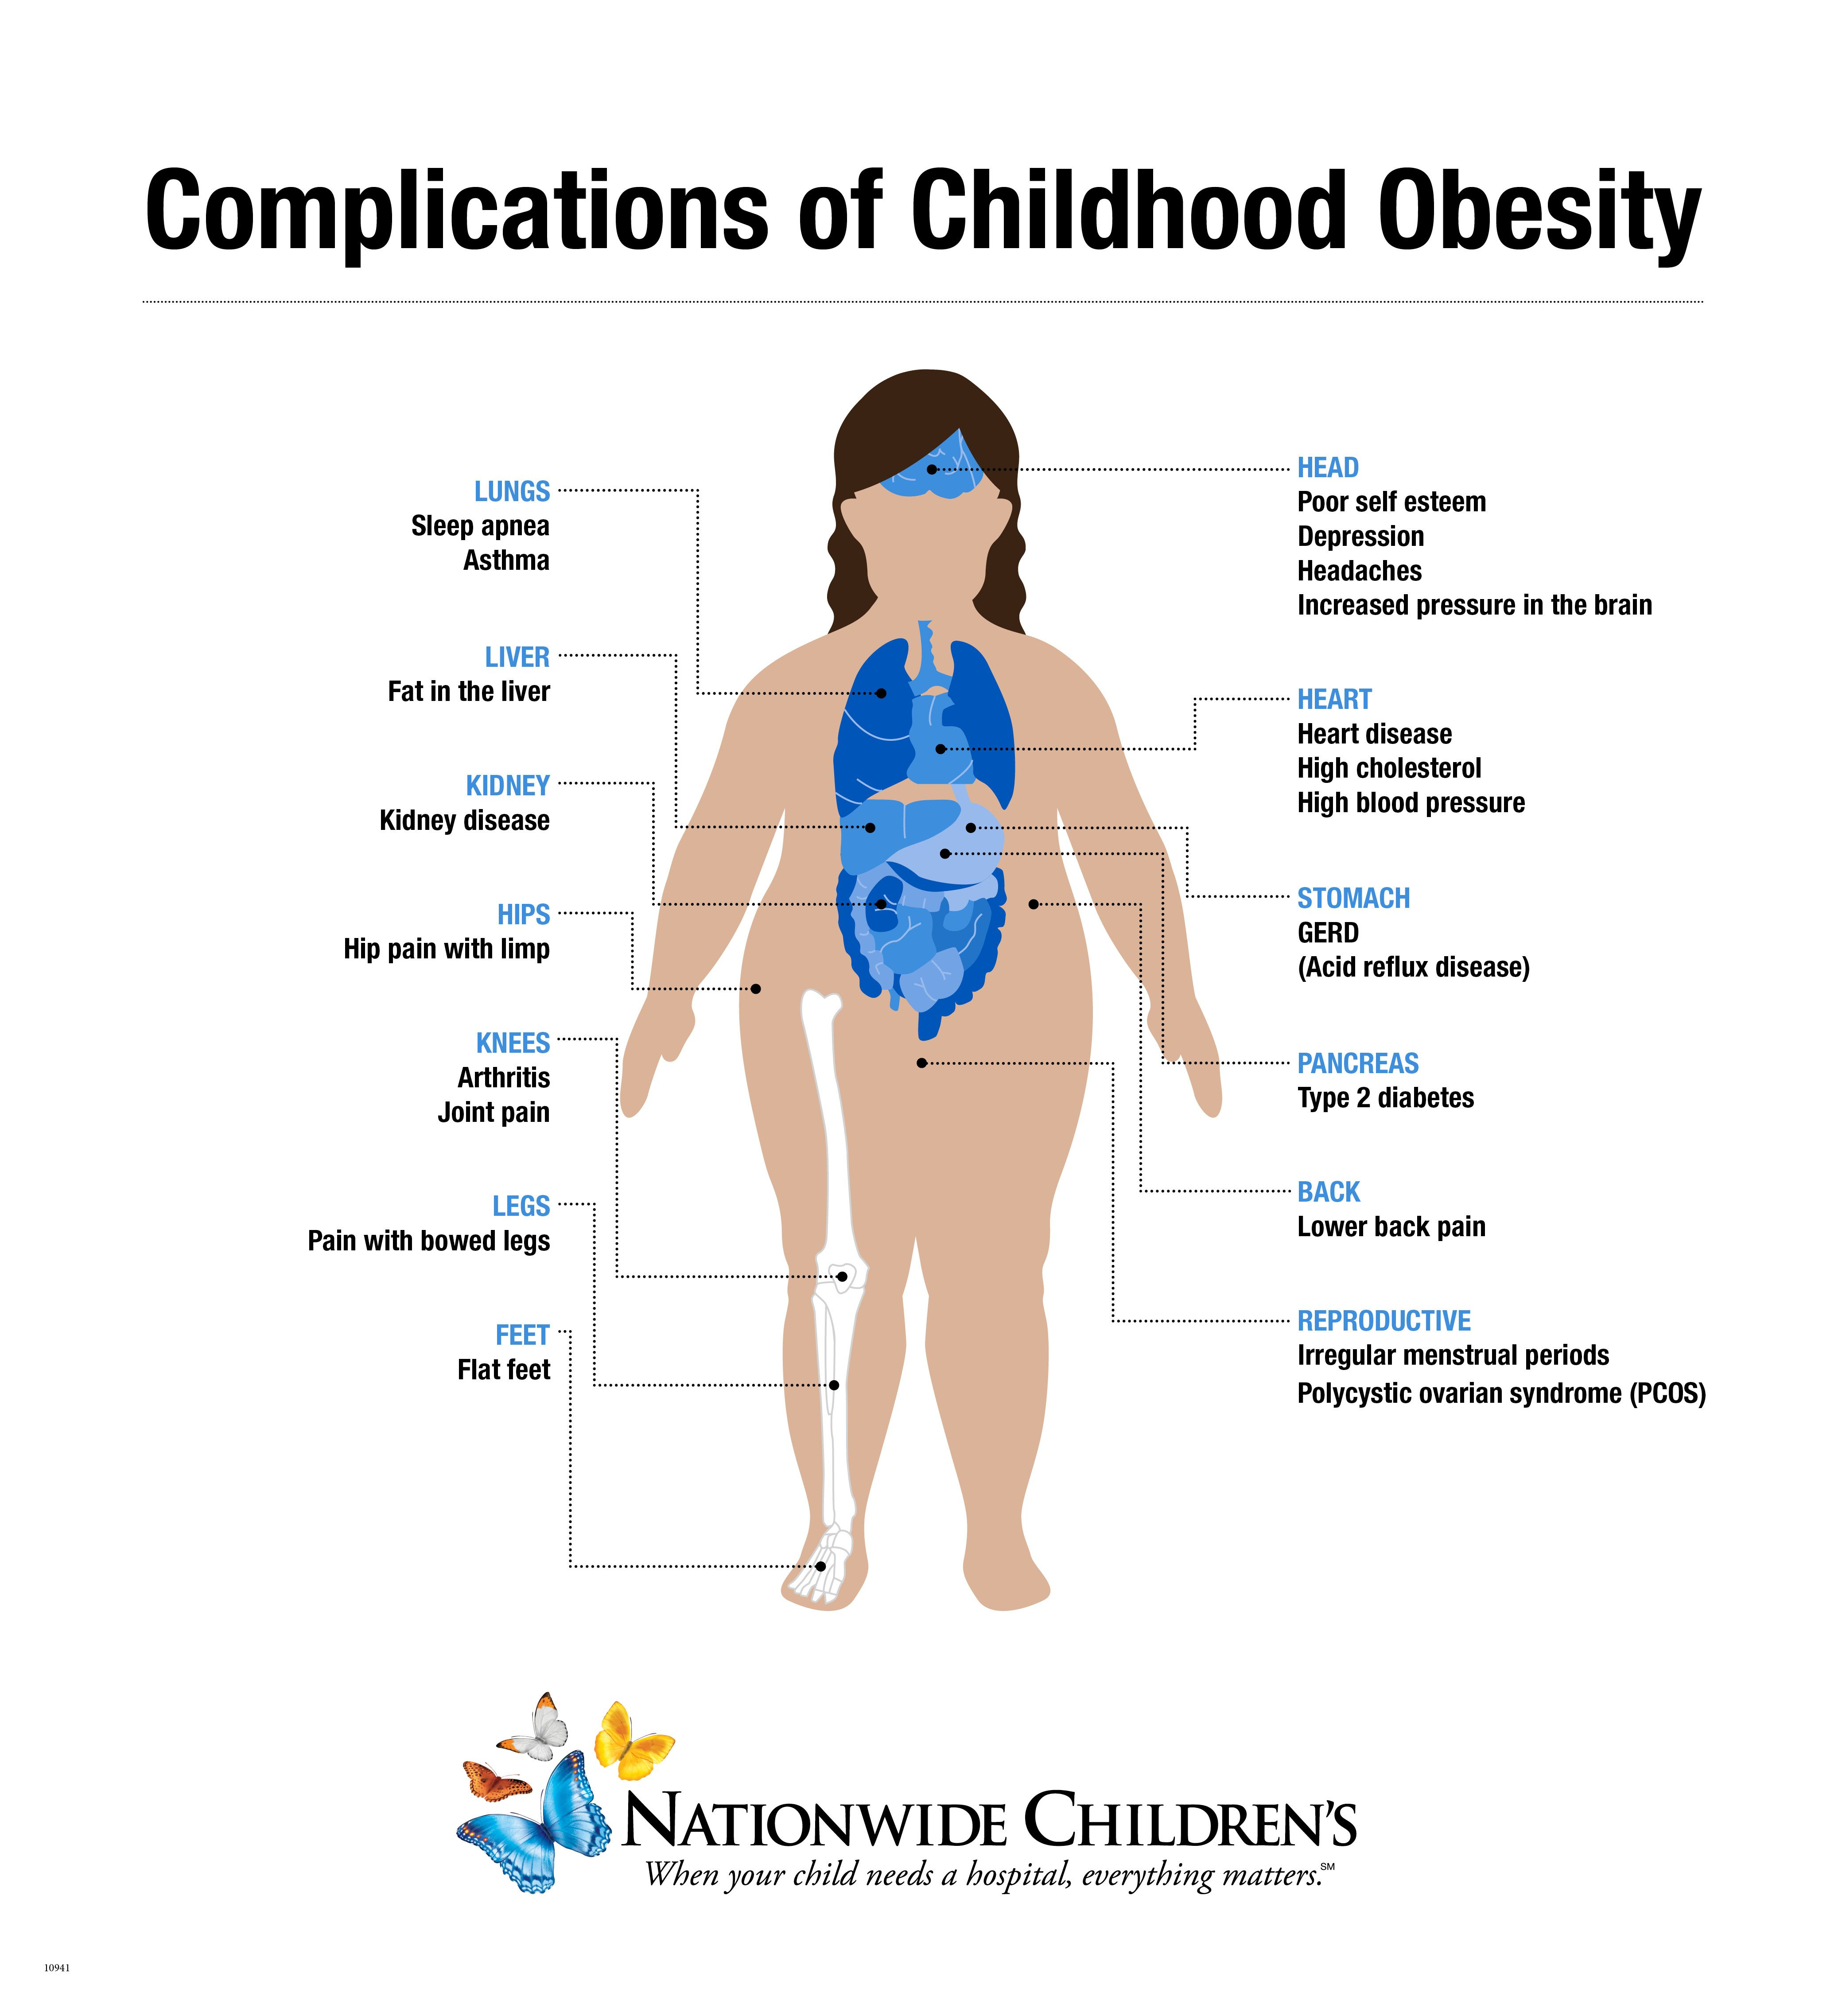 obesity in children Background on how we can (ways to enhance children's activity & nutrition) is addressing childhood obesity through community action.